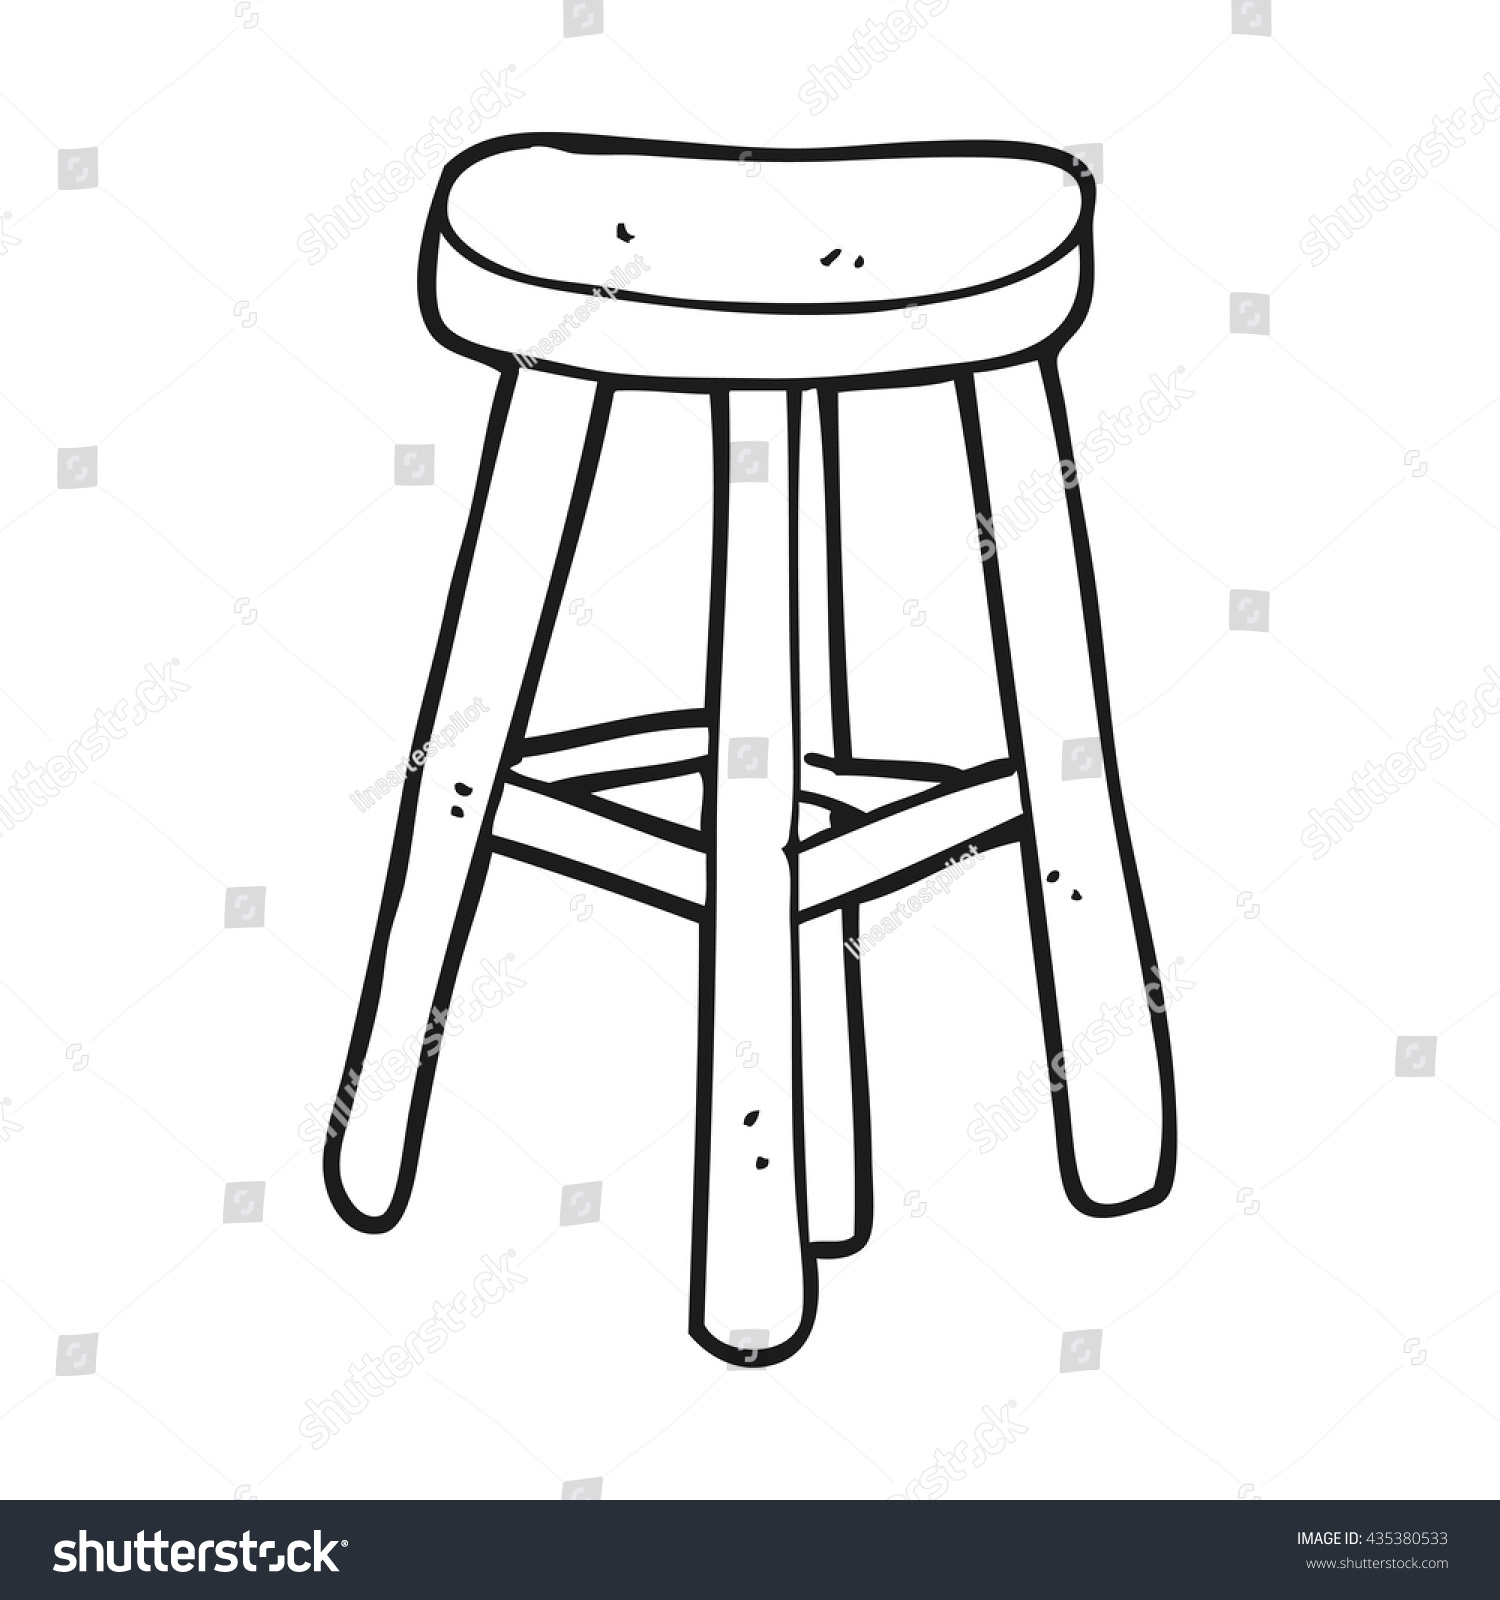 Black and white chair drawing - Freehand Drawn Black And White Cartoon Stool